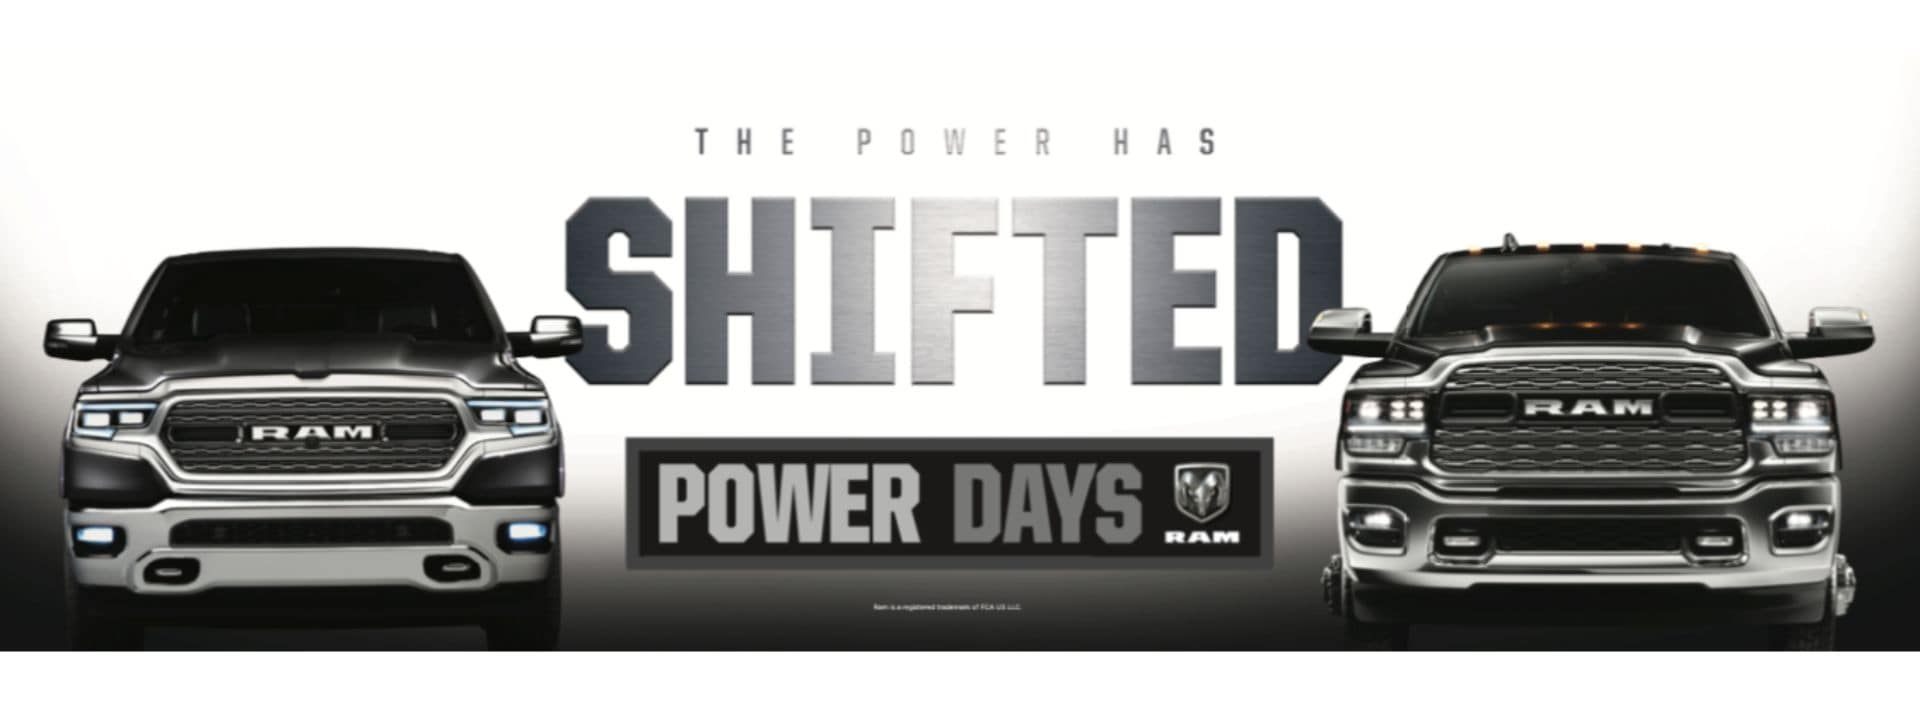 Shifted power days